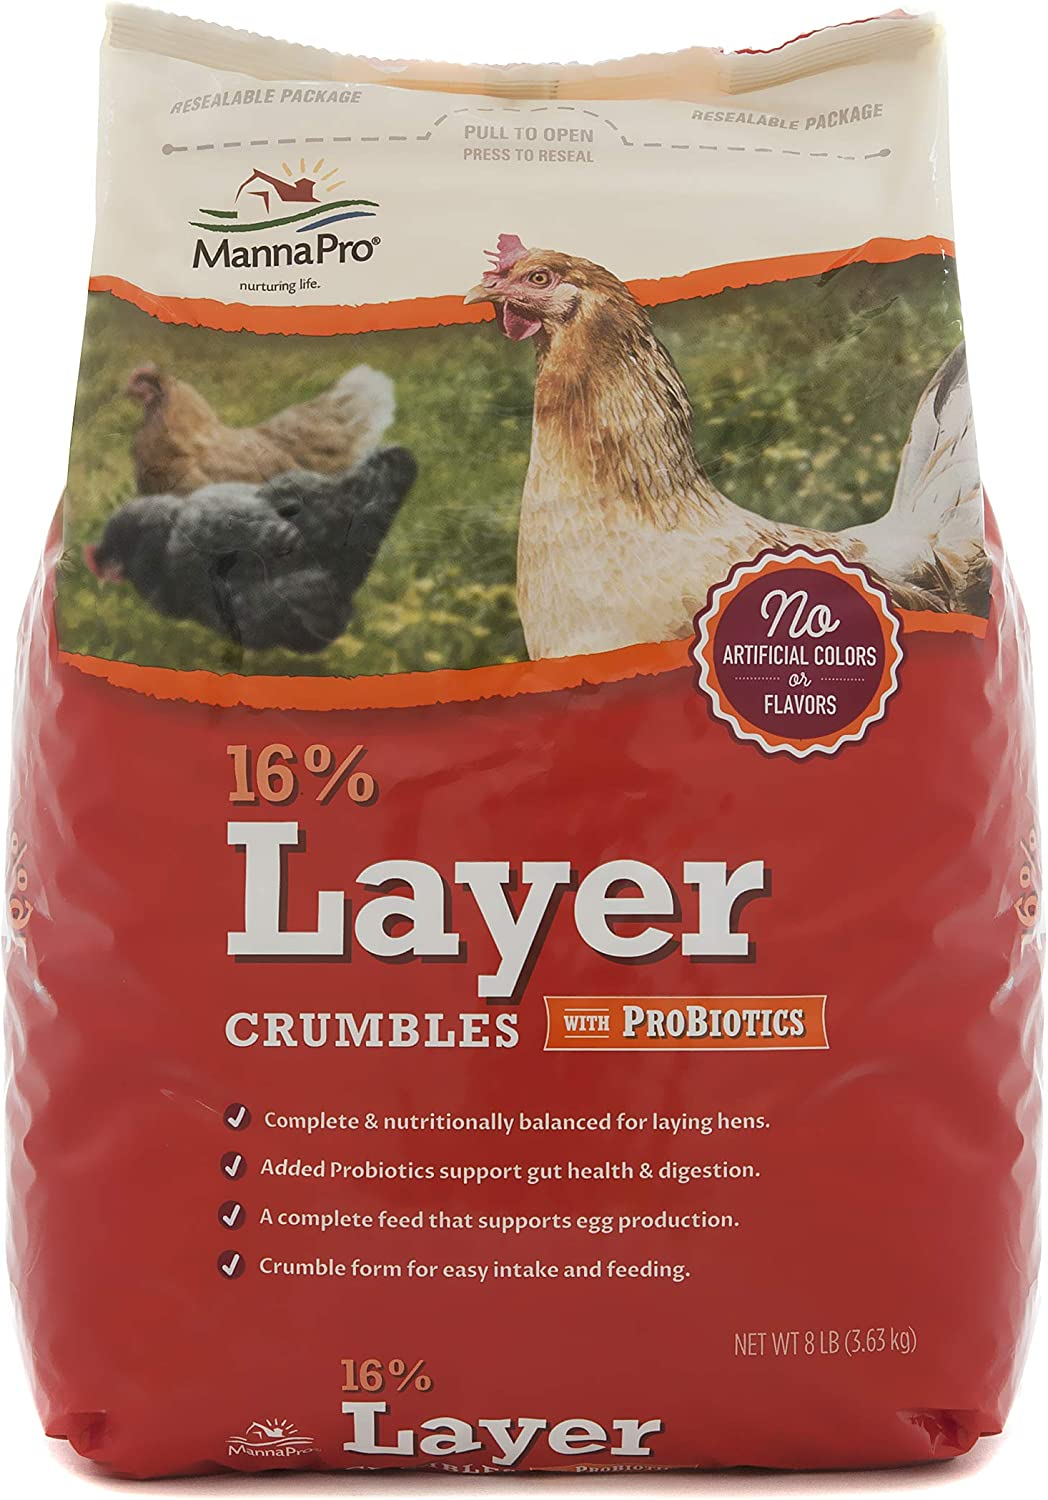 Manna Pro 16% Layer with Probiotic Crumble, 8 lb